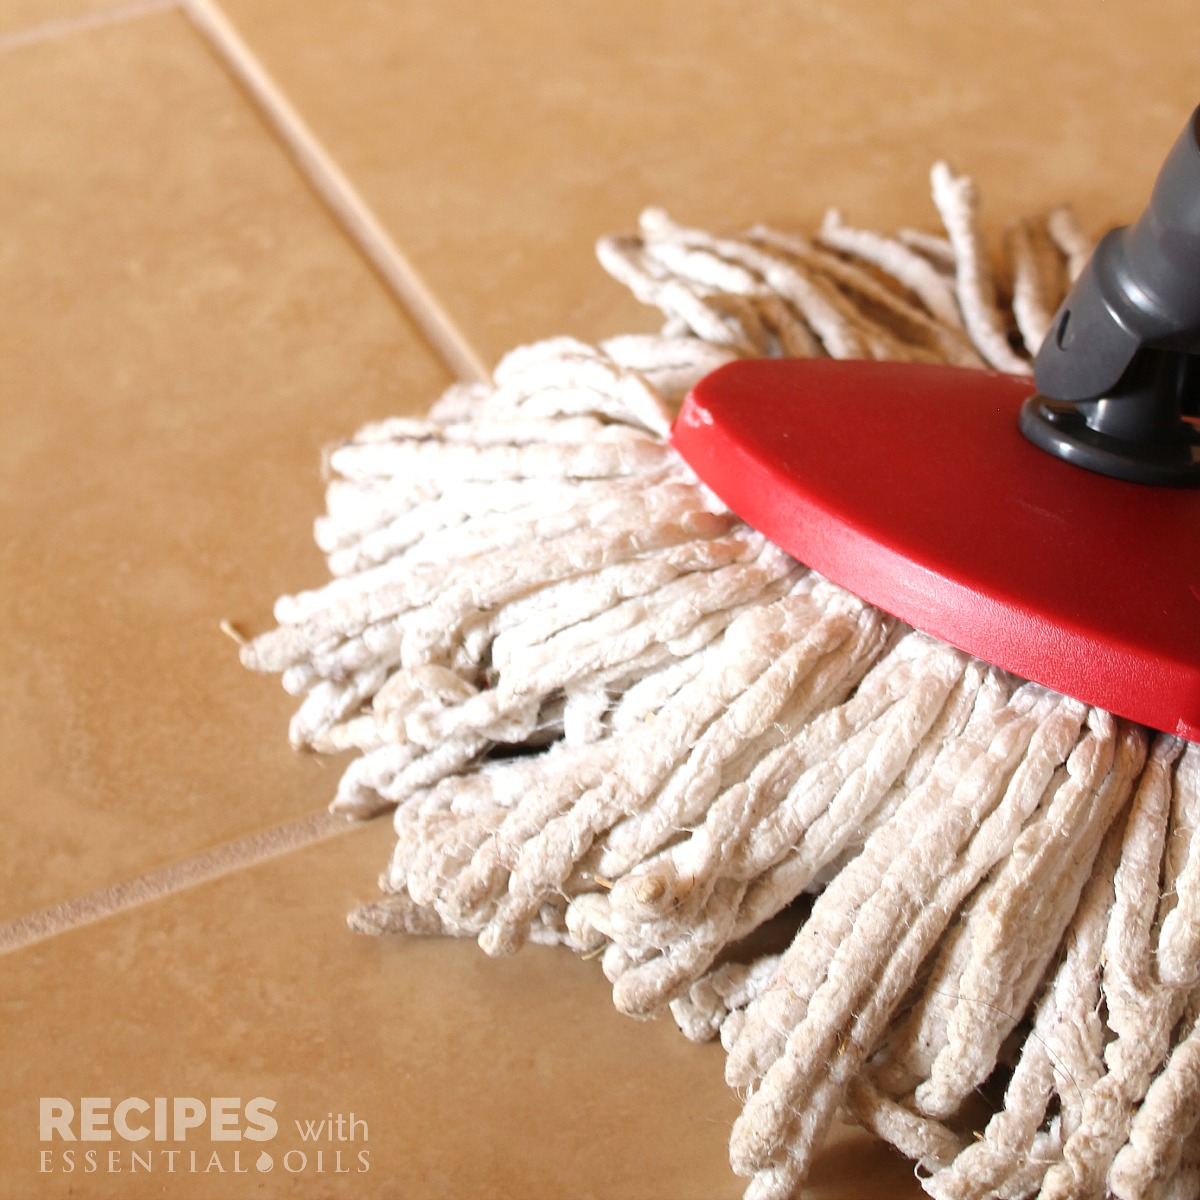 Homemade tile floor cleaner recipe recipes with essential oils doublecrazyfo Image collections